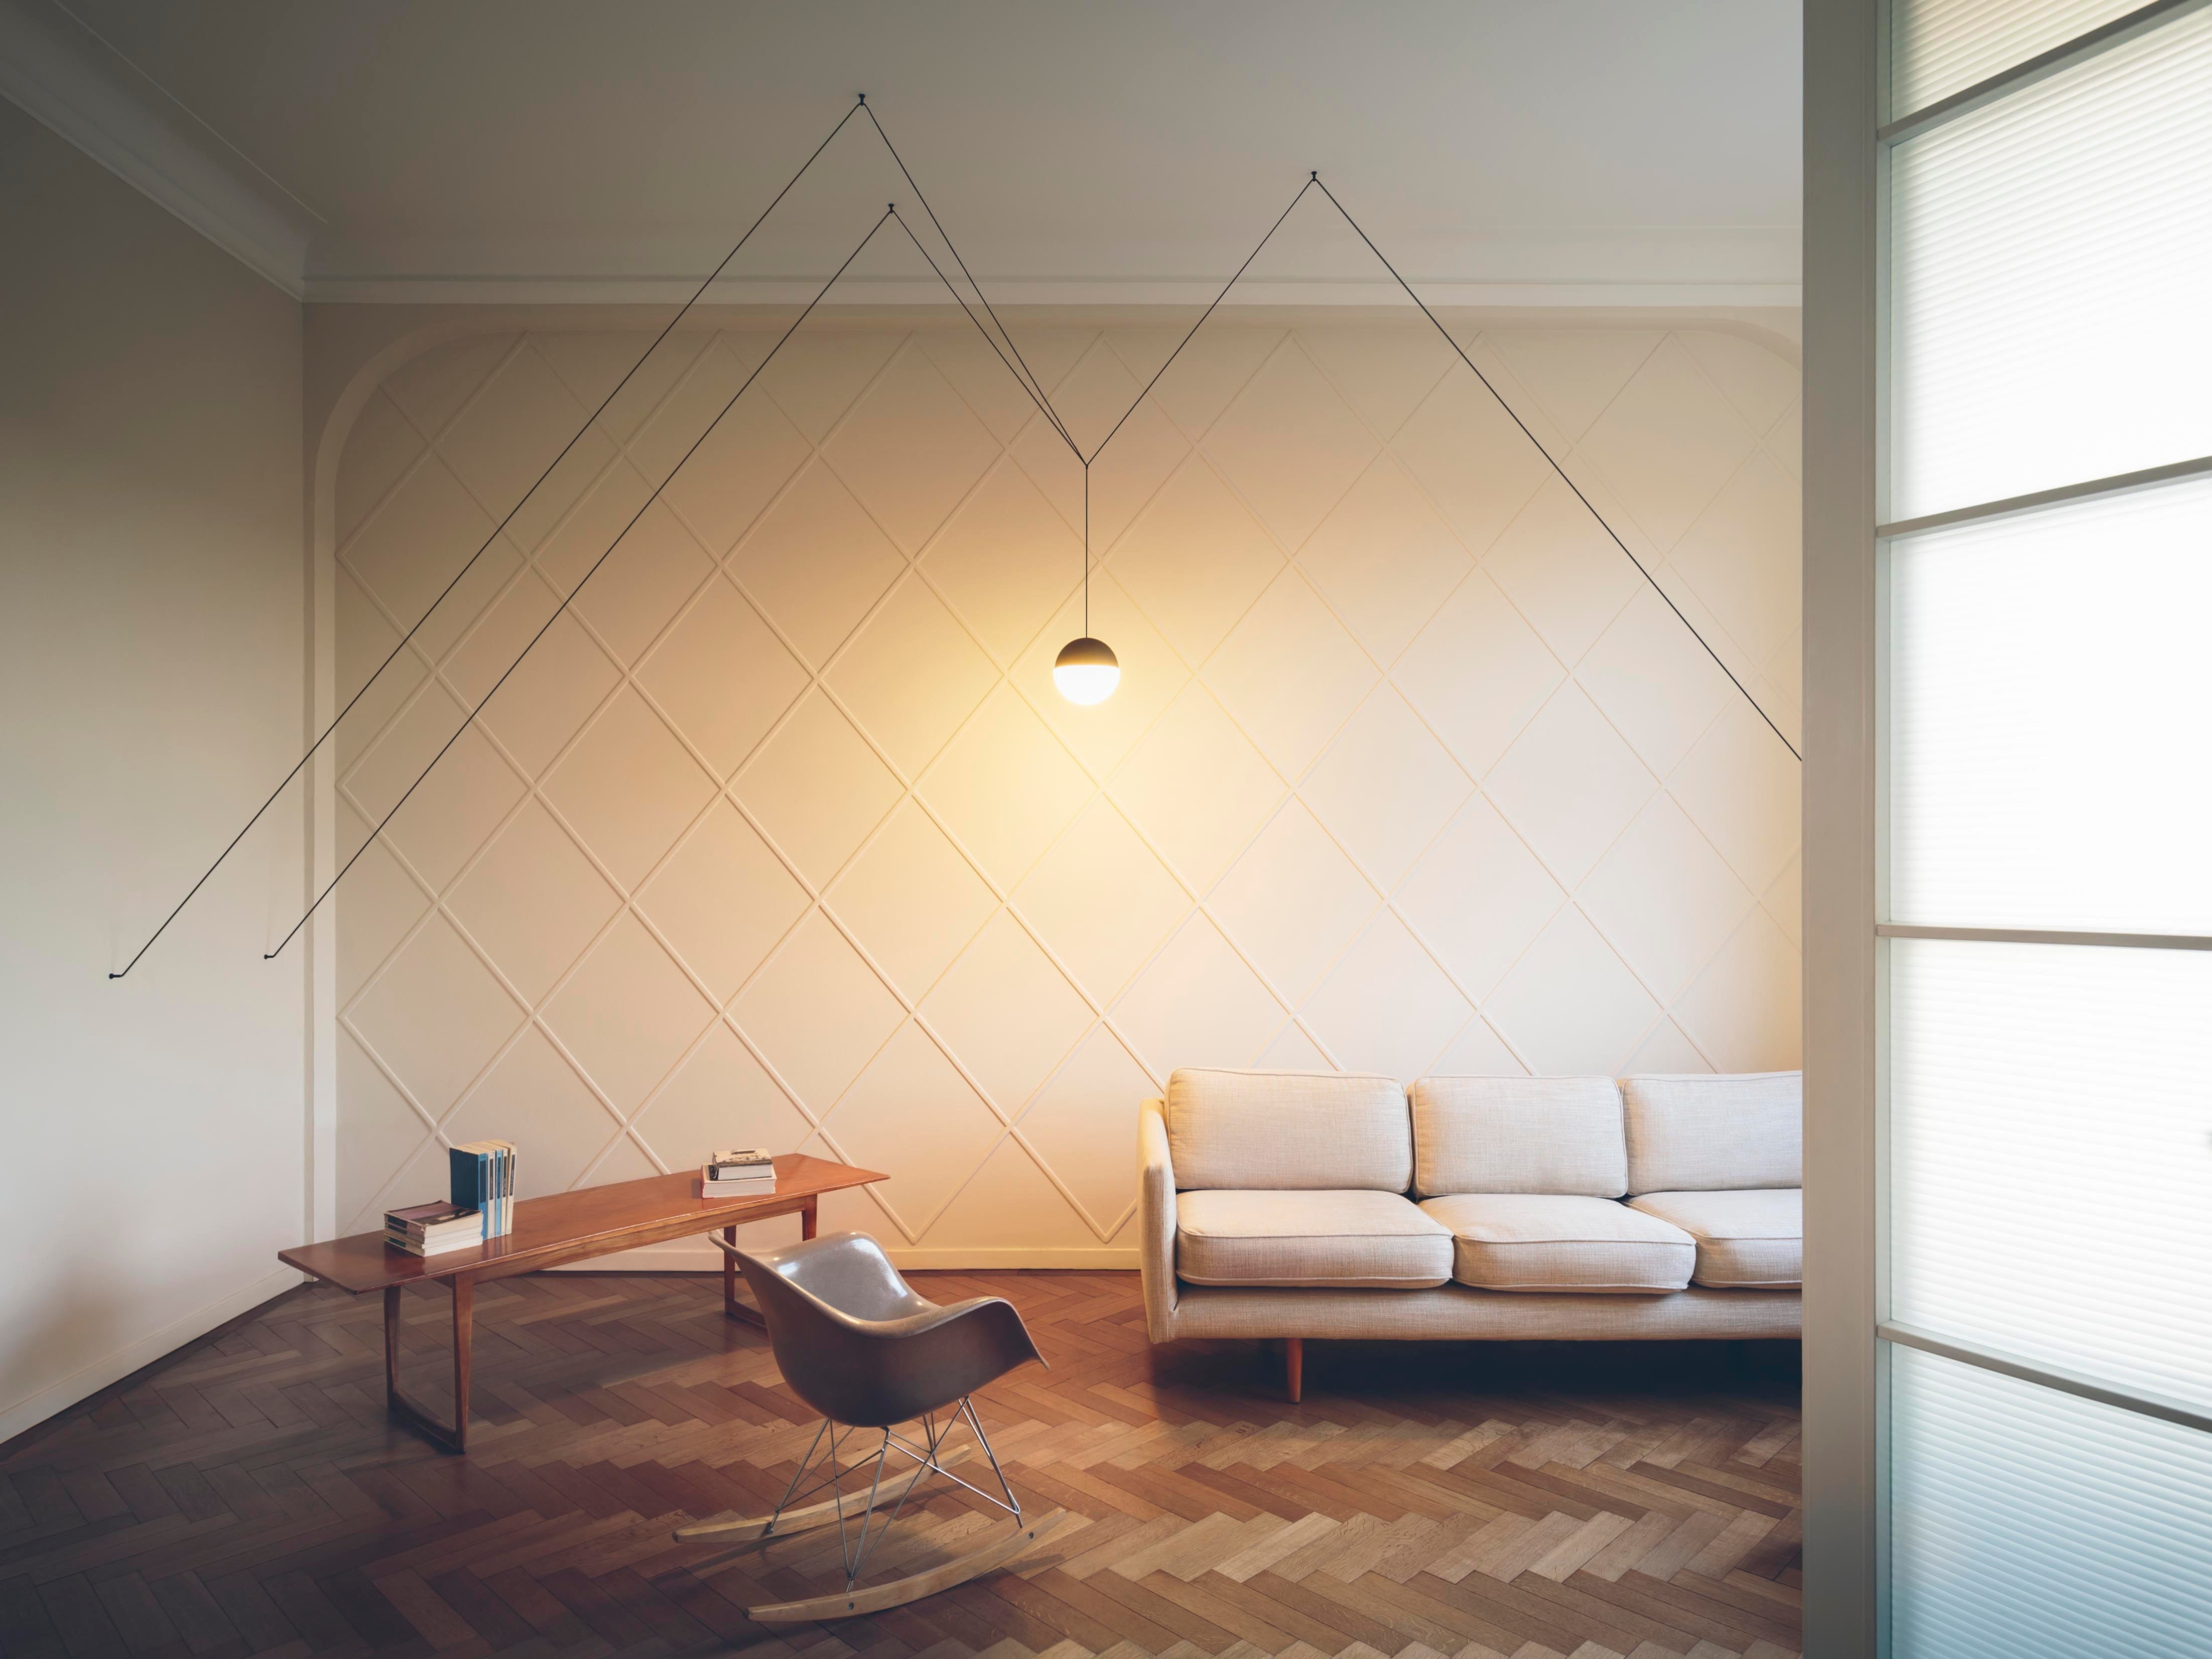 FLOS Modern lighting company